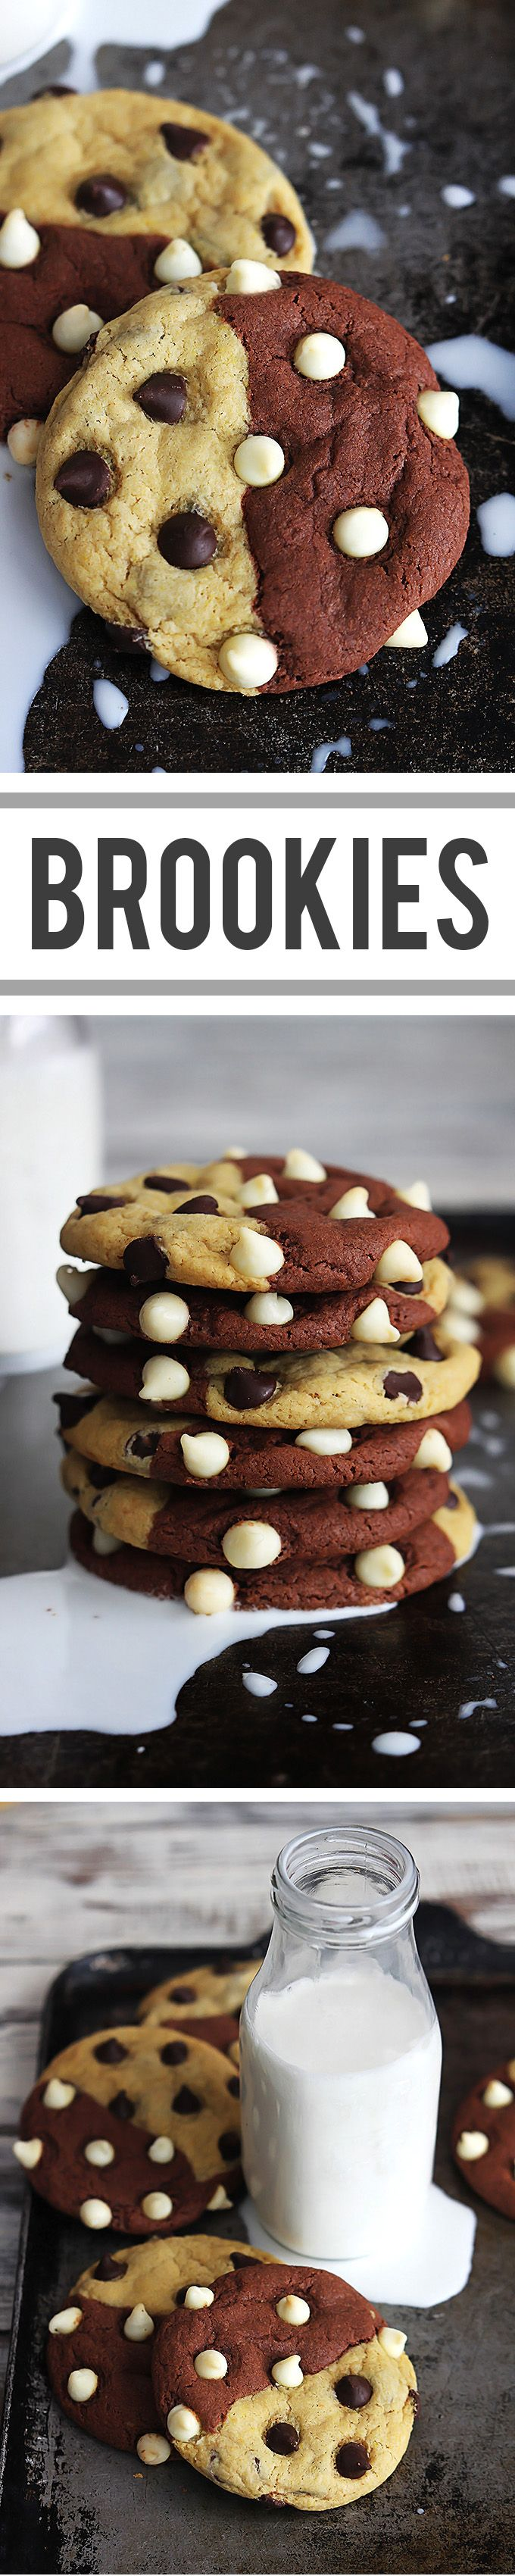 Combining brownies and chocolate chip cookies gives you soft and chewy BROOKIES! aka: True Love Cookies!